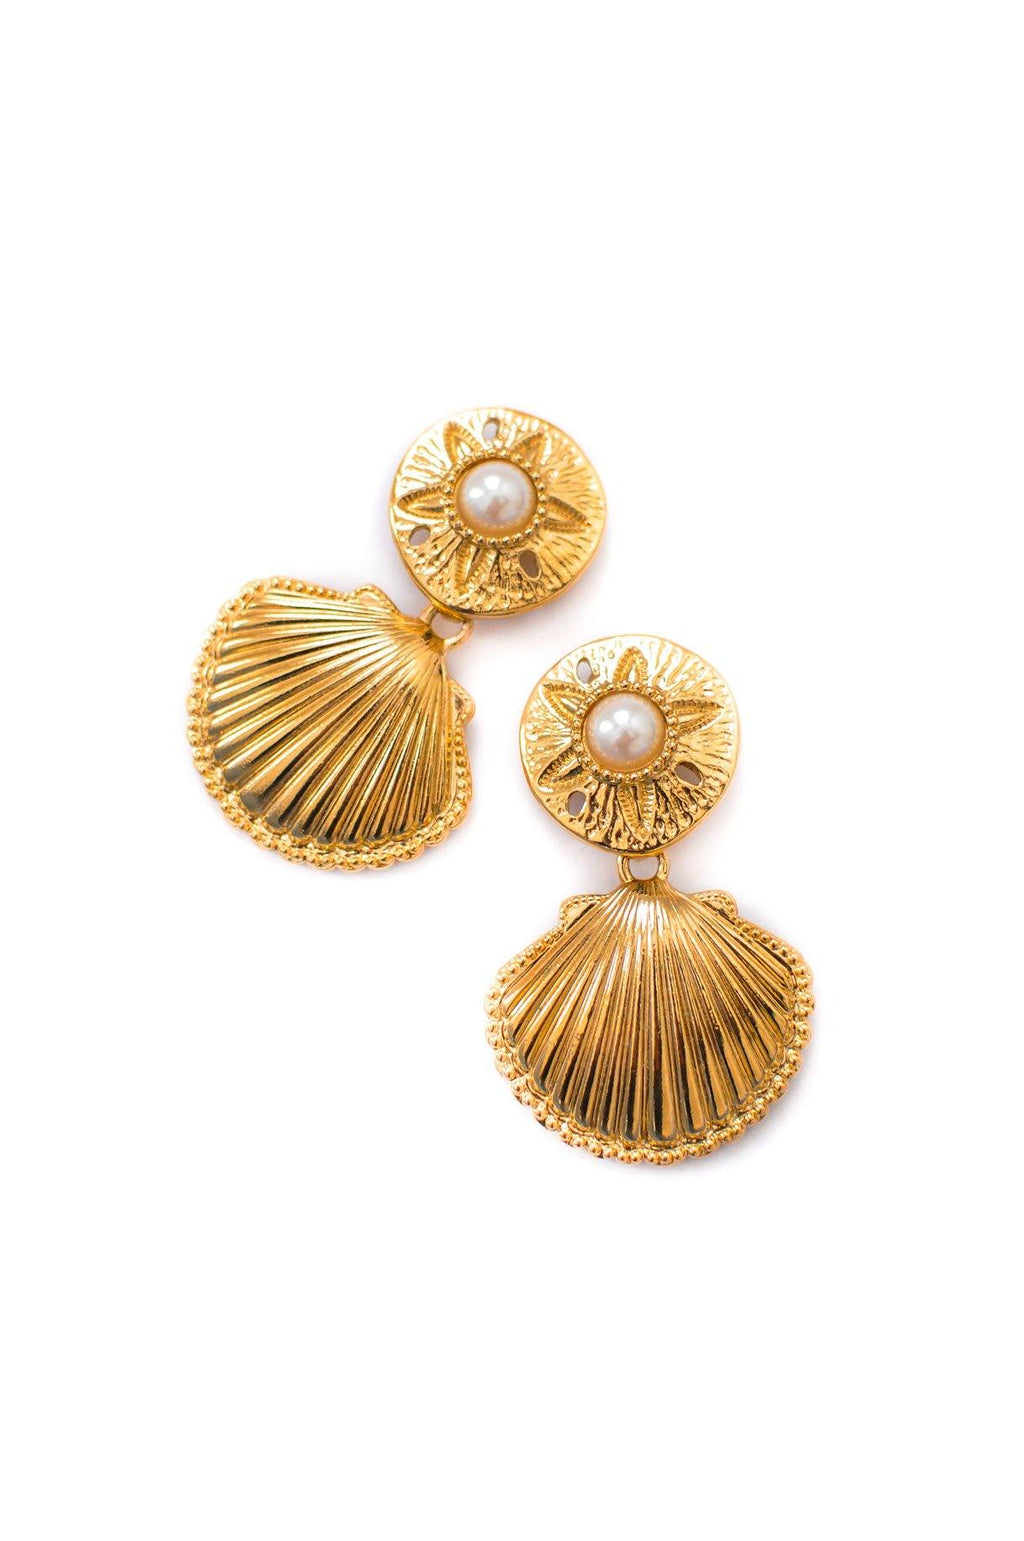 Kenneth Jay Lane Statement Shell Earrings